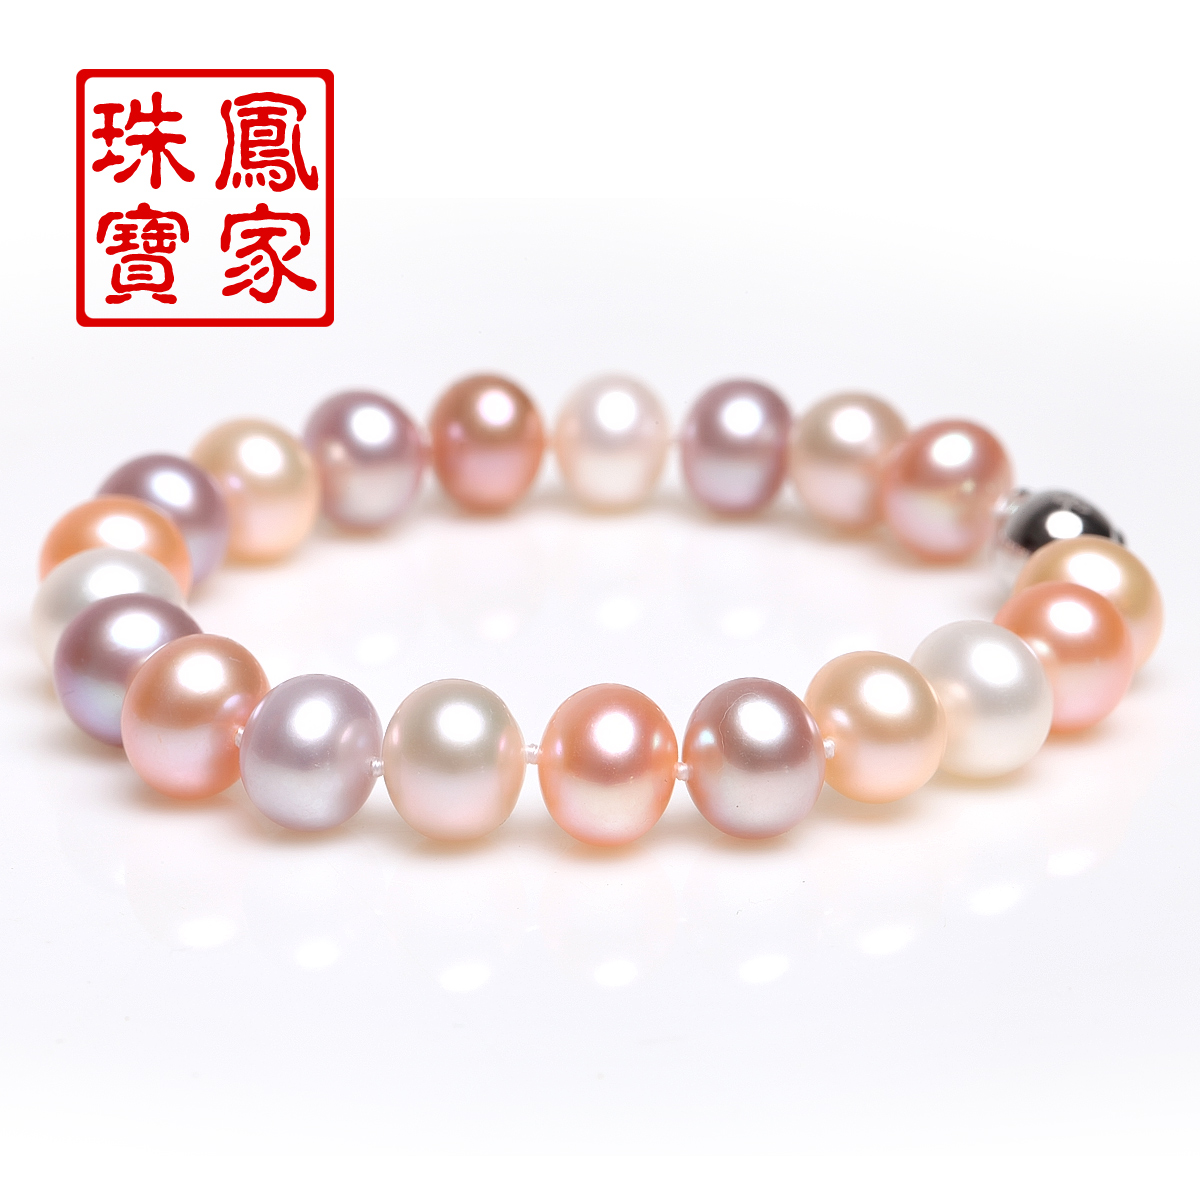 Phoenix jewelry natural pearl bracelet nearly round mixed color light translucent pearl genuine 925 silver clasp